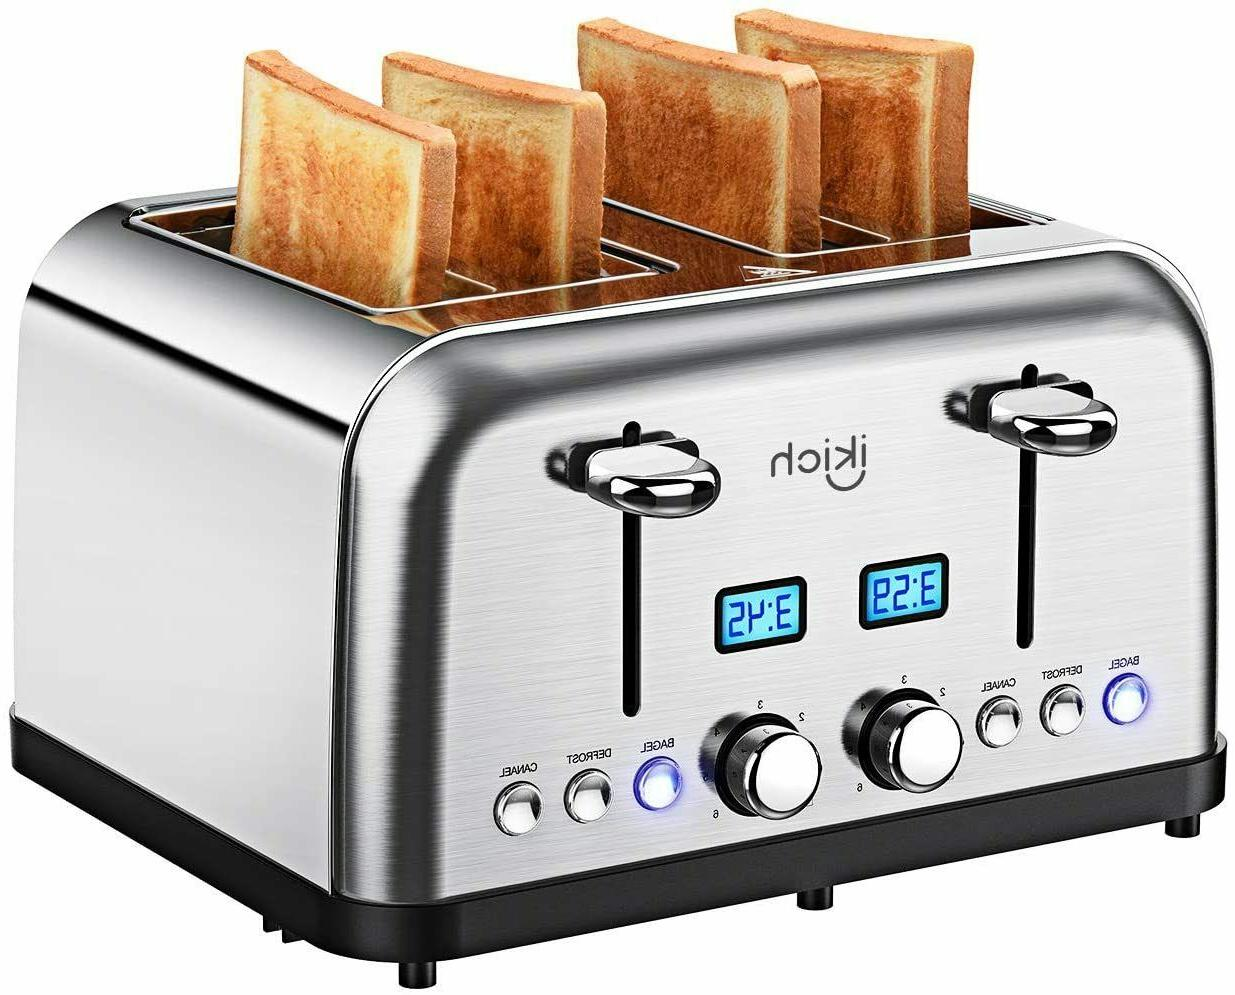 4 slice toaster stainless steel digital countdown